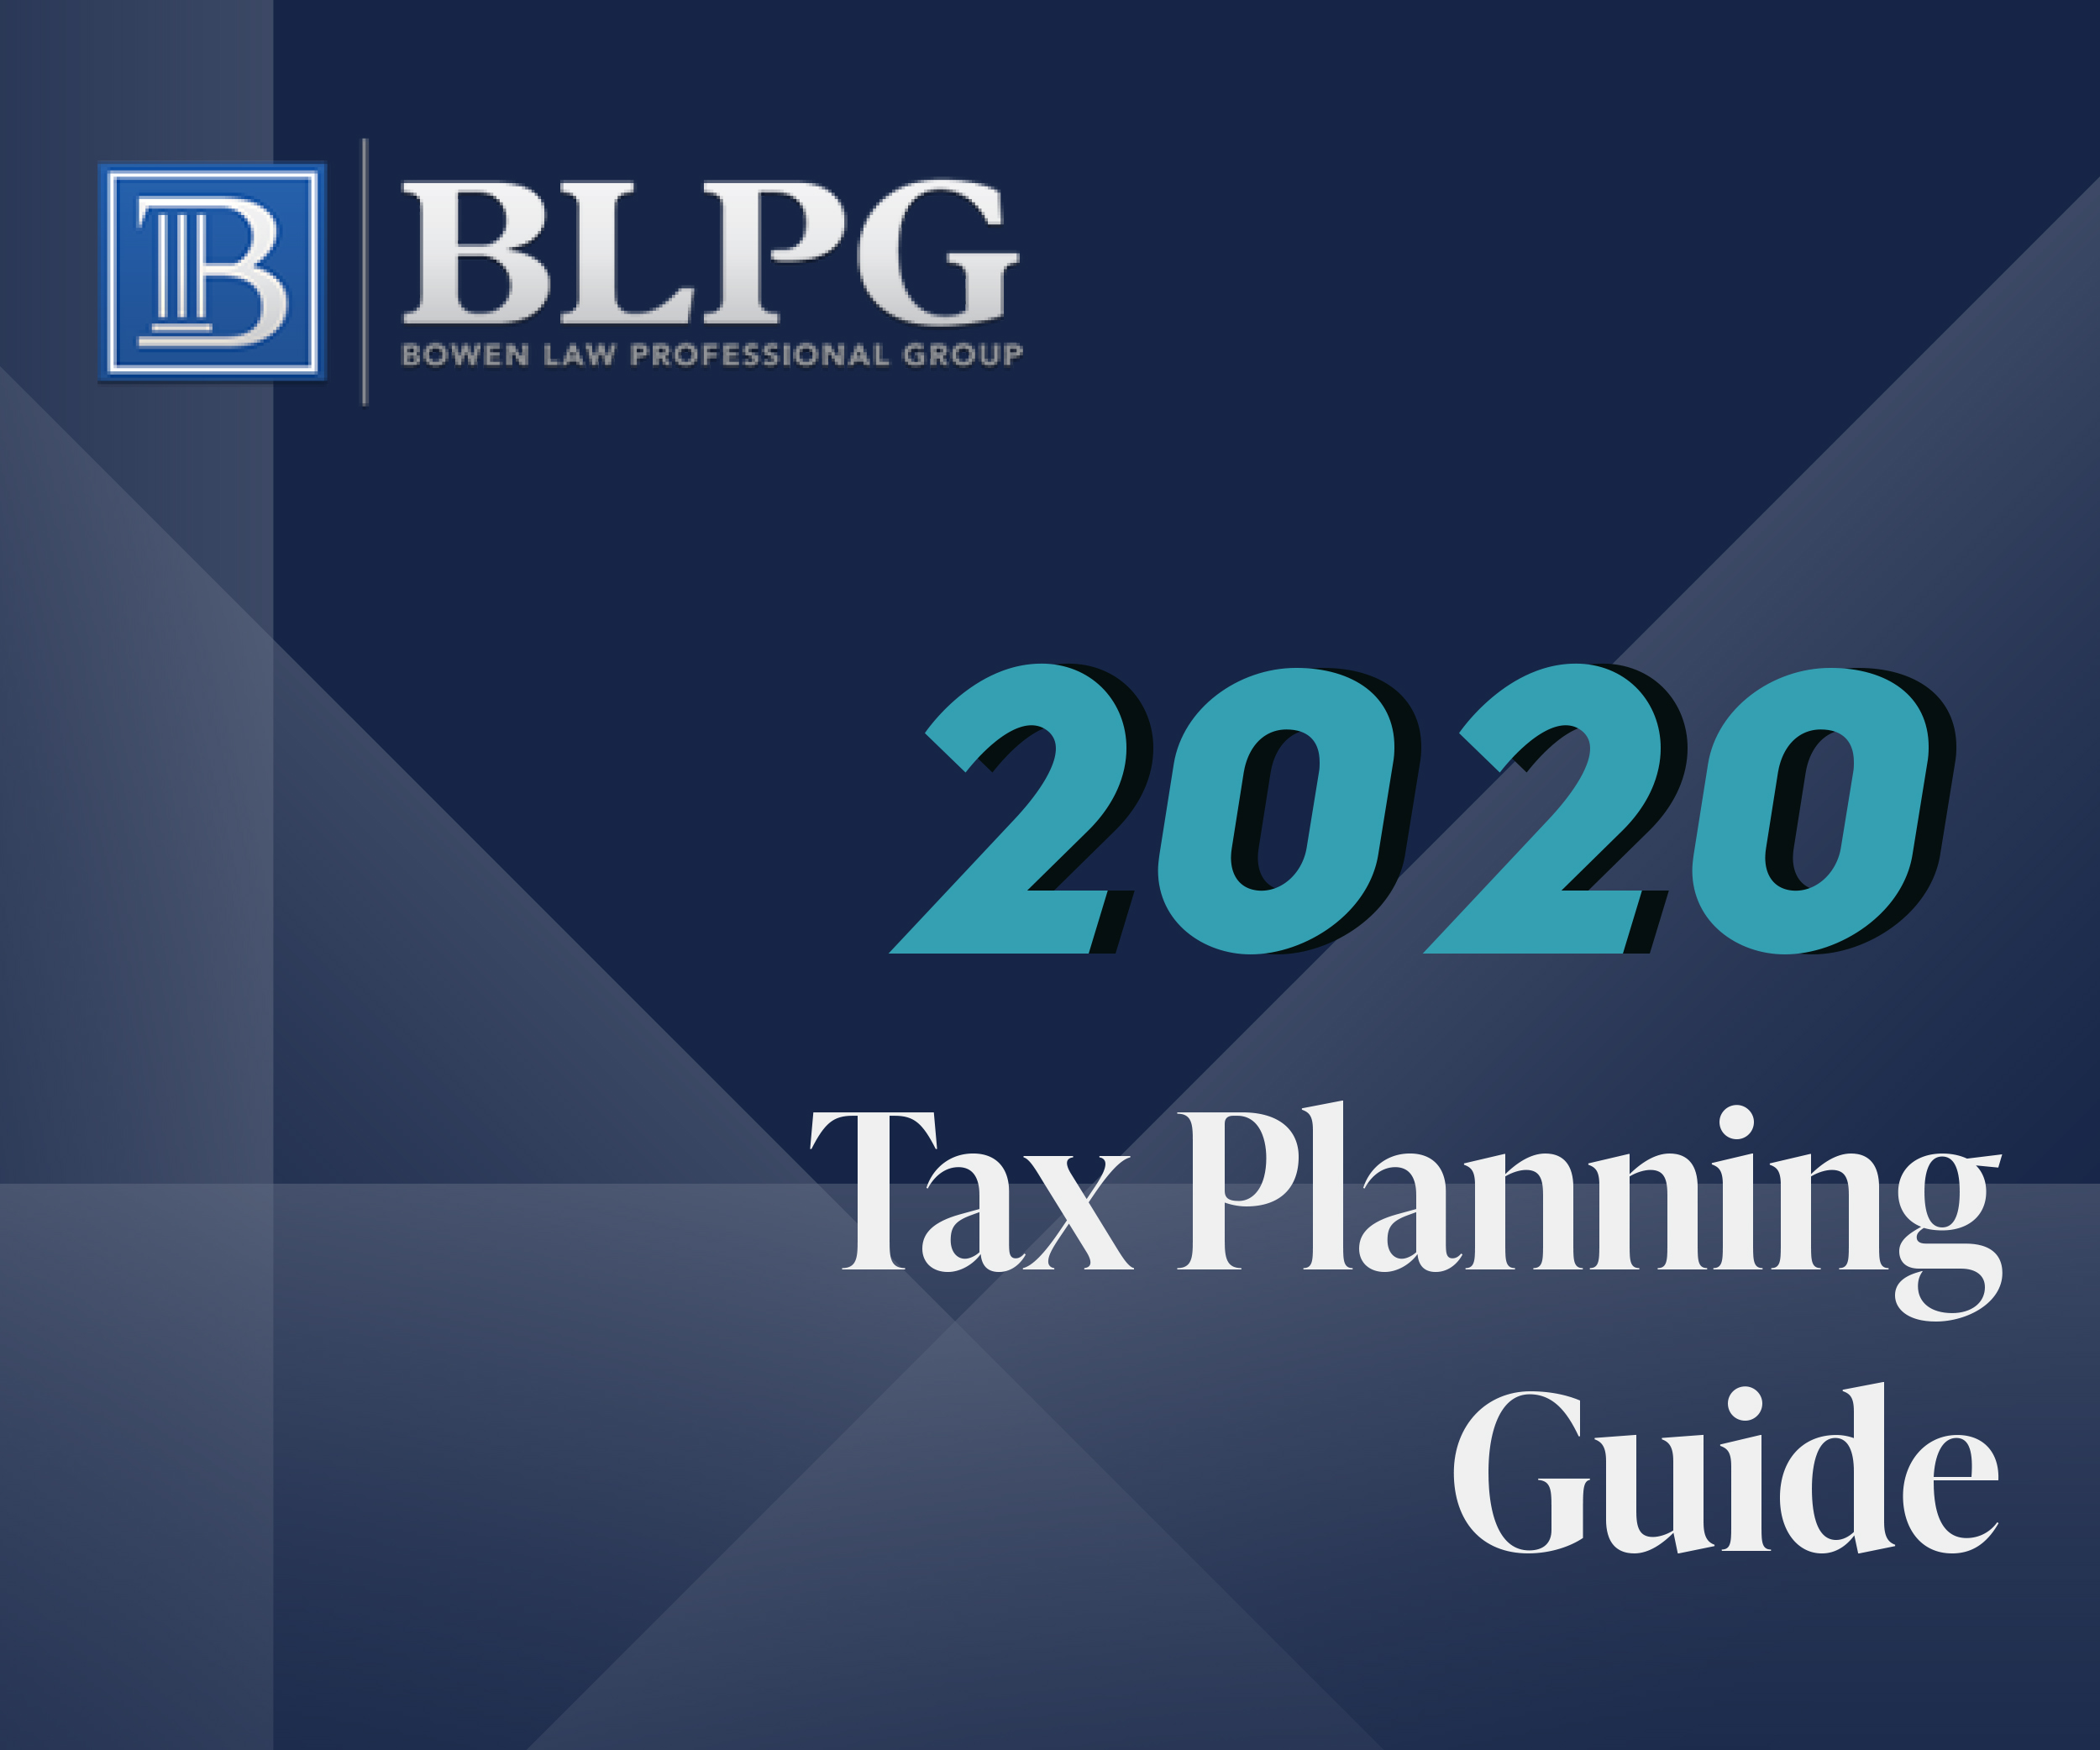 Tax Planning Guide 2020